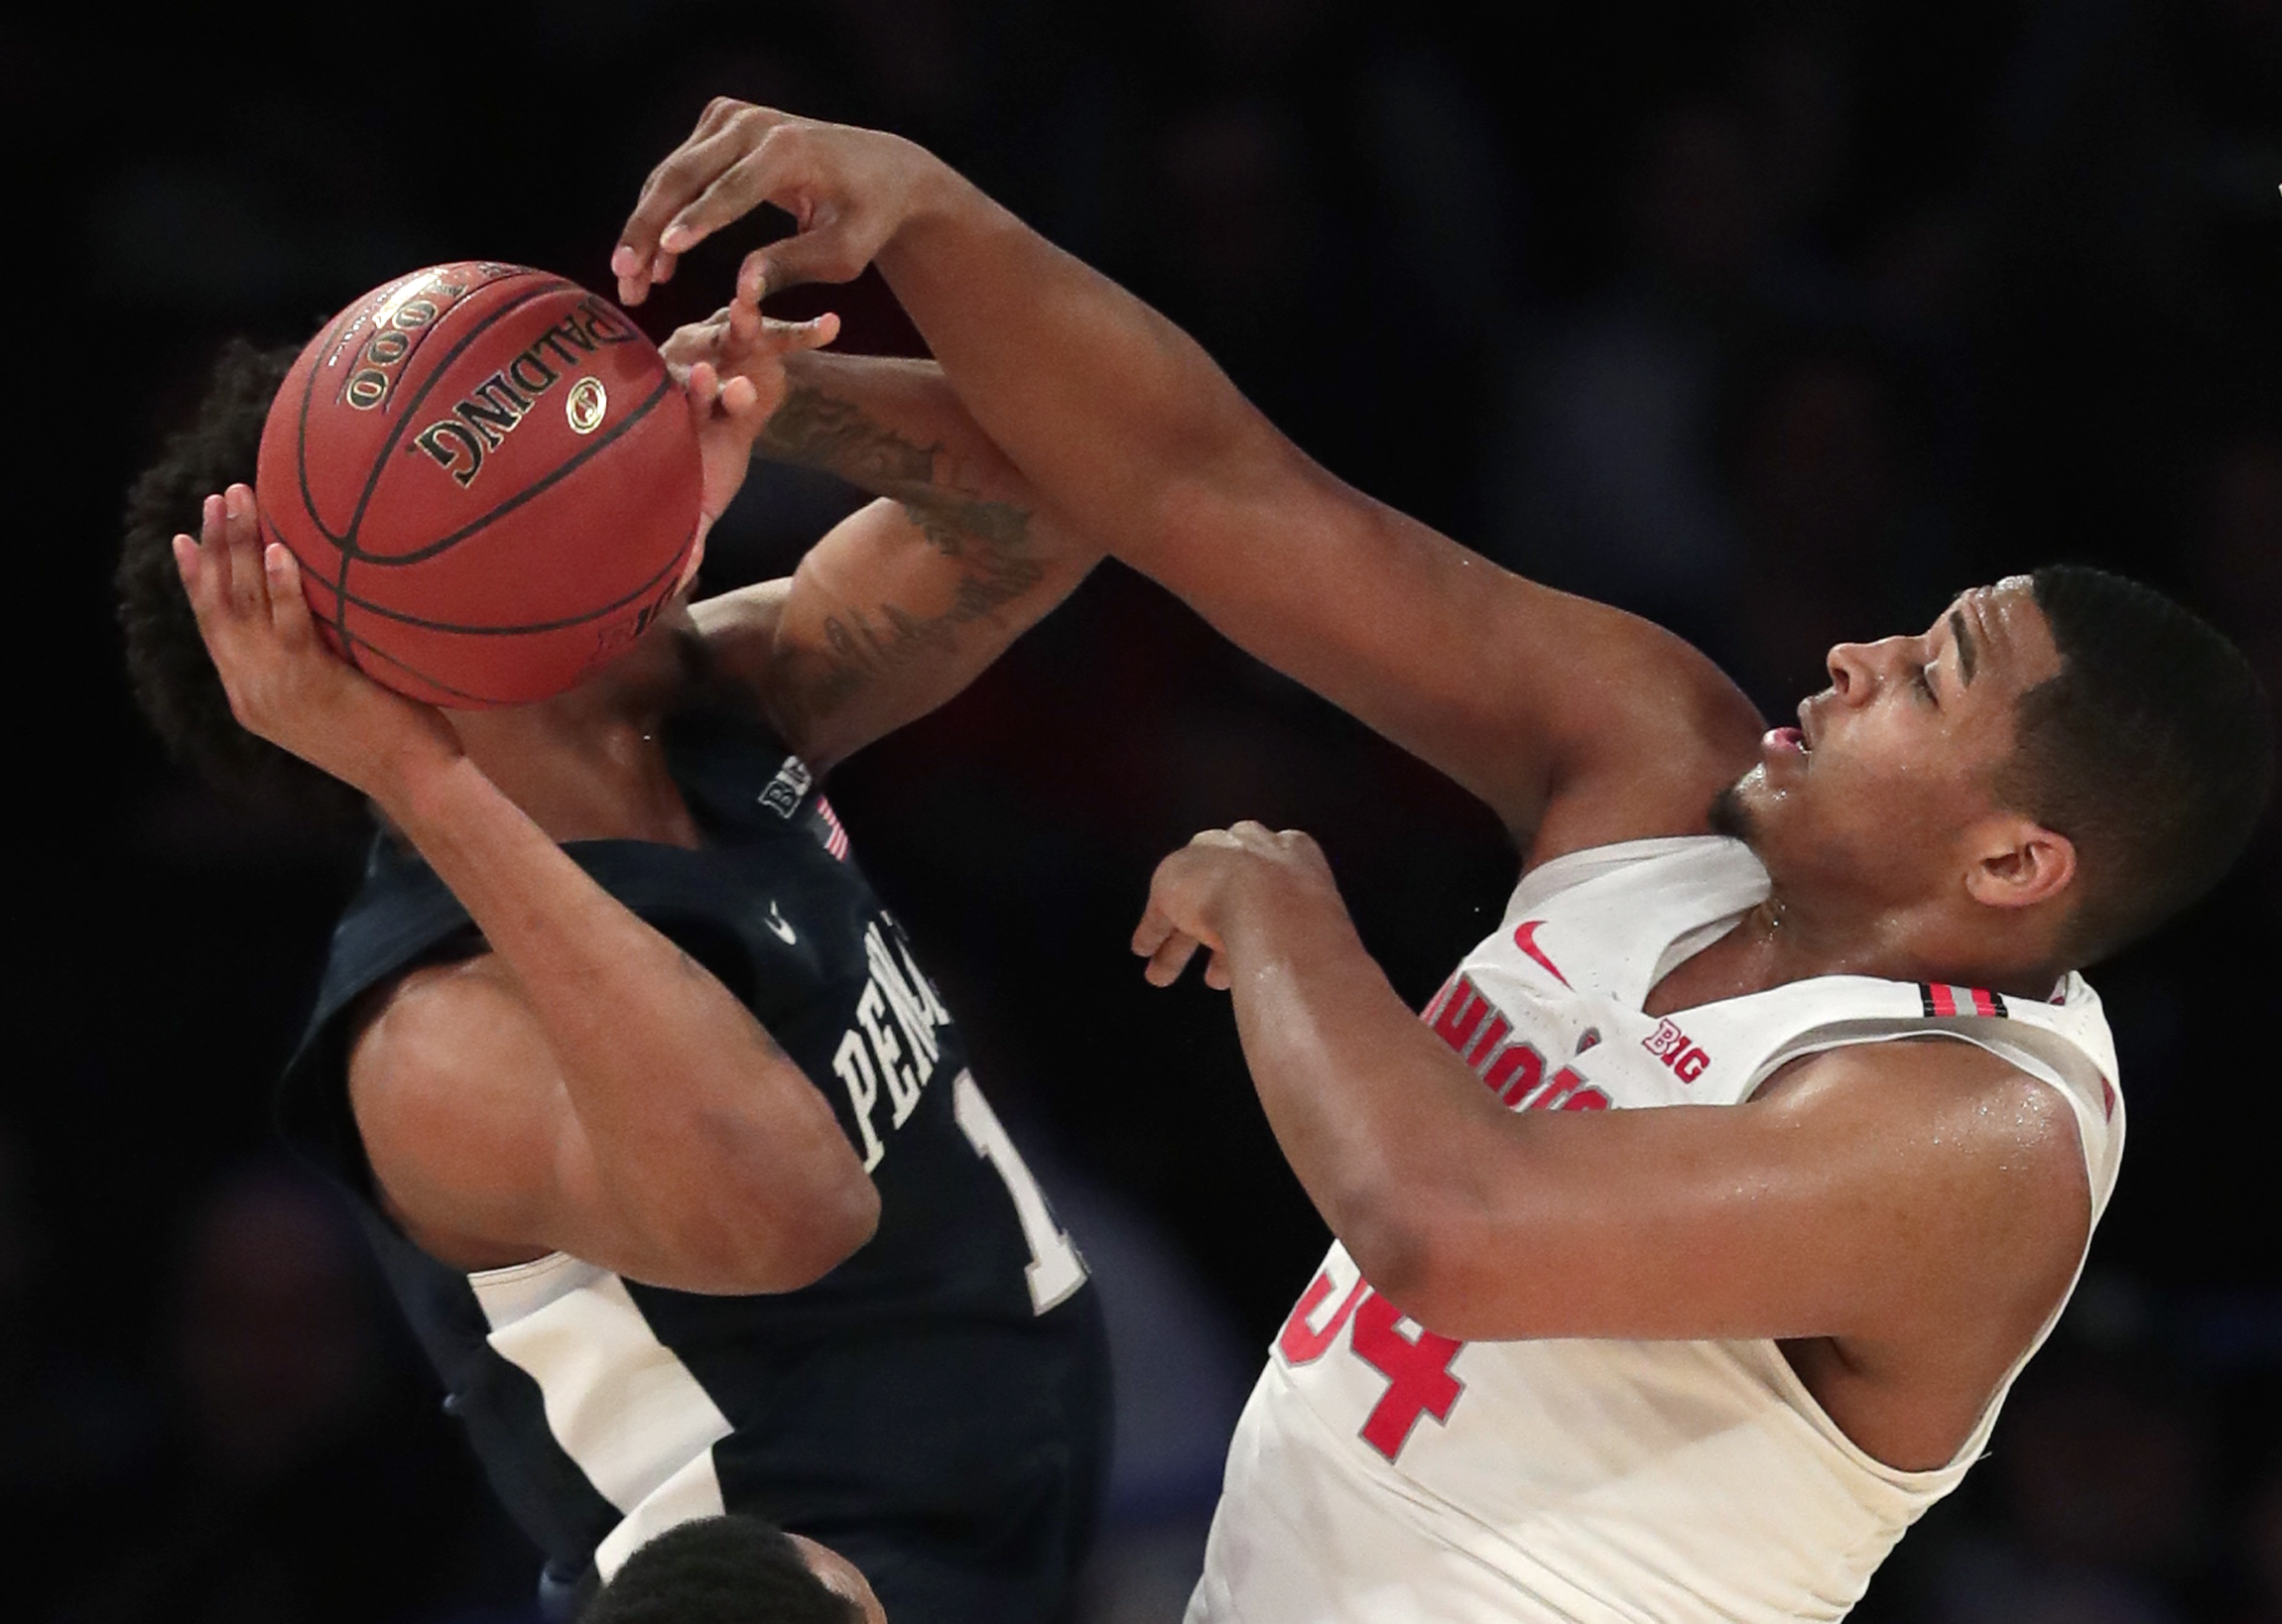 Ohio State Projects As No 5 Seed In Tournament The Blade